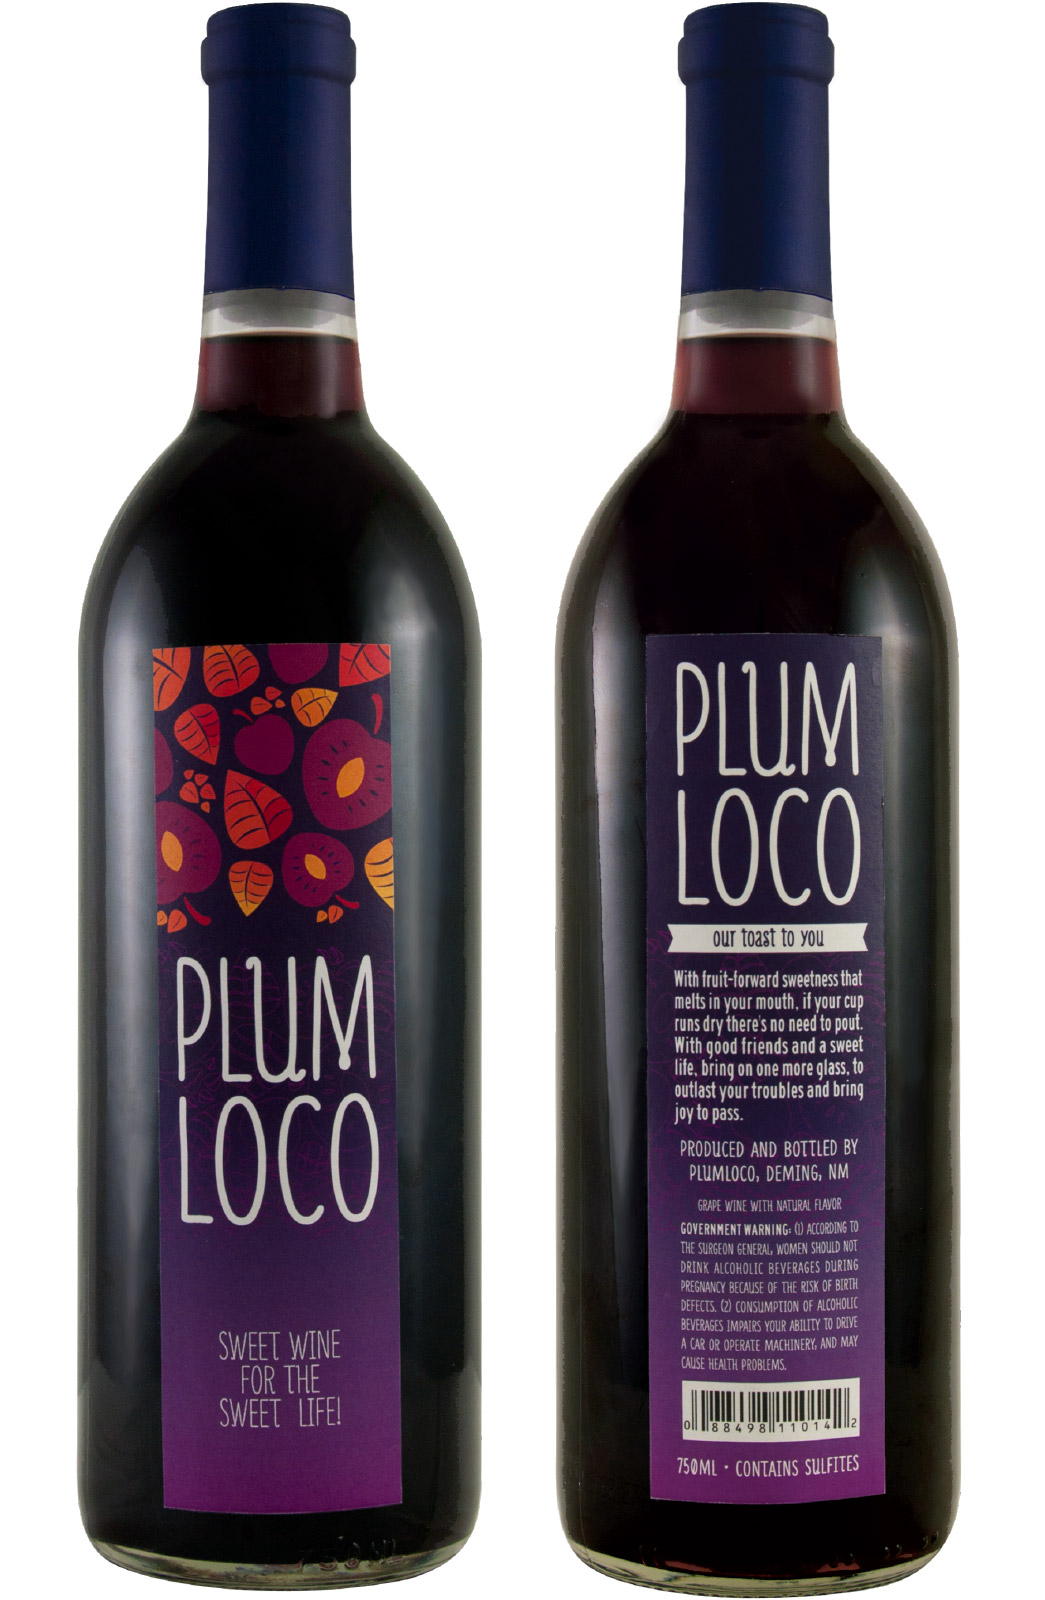 Plum Loco label designs by Miranda Williams